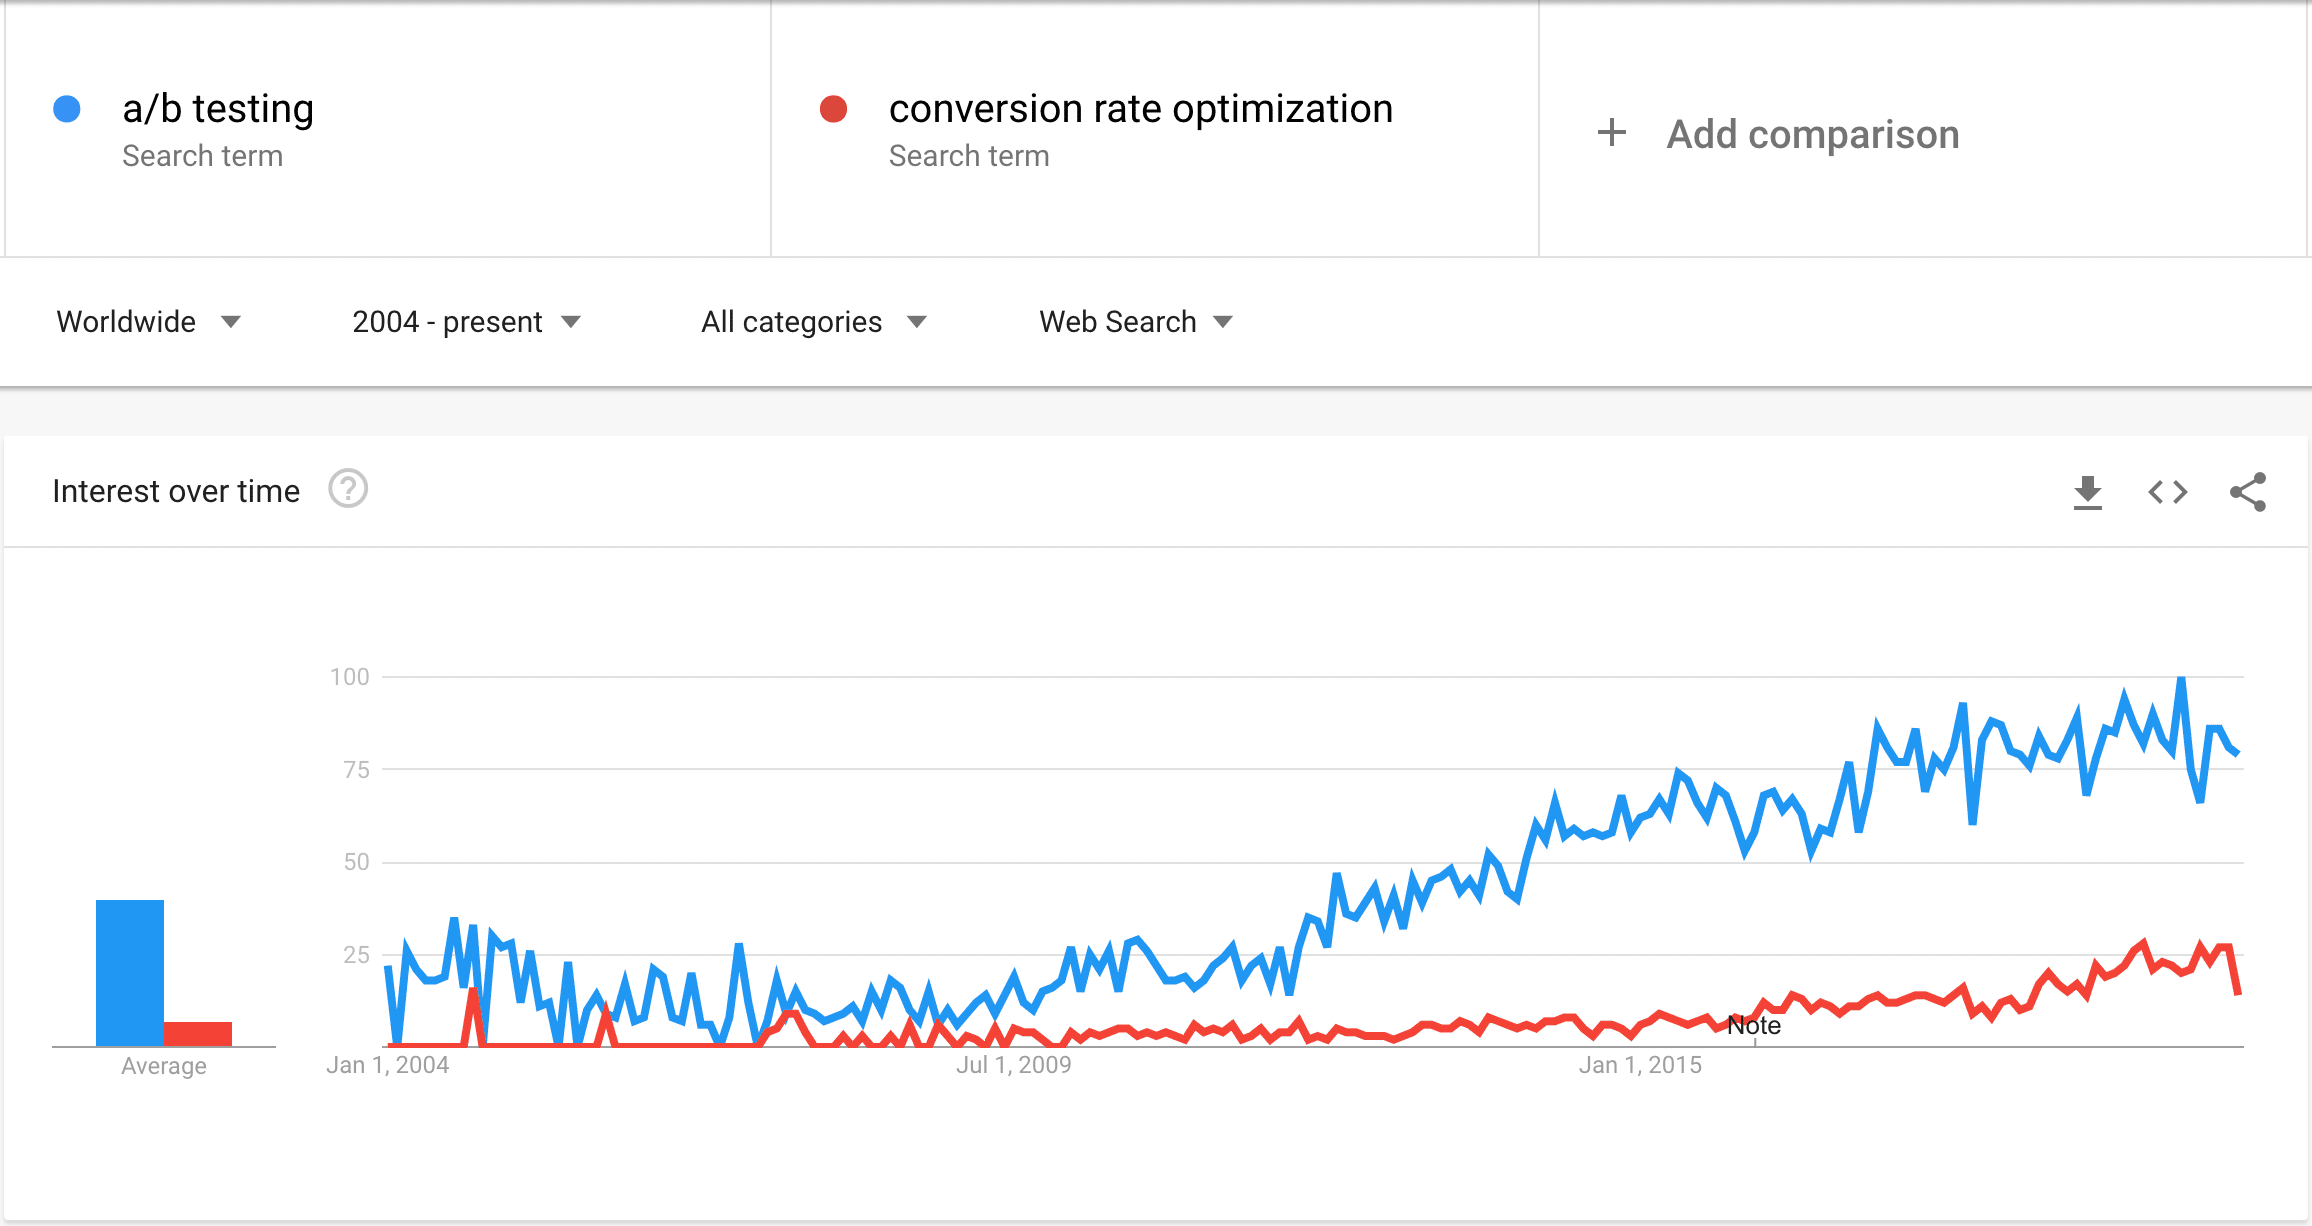 Google Trends Data For AB Testing & Conversion Rate Optimization